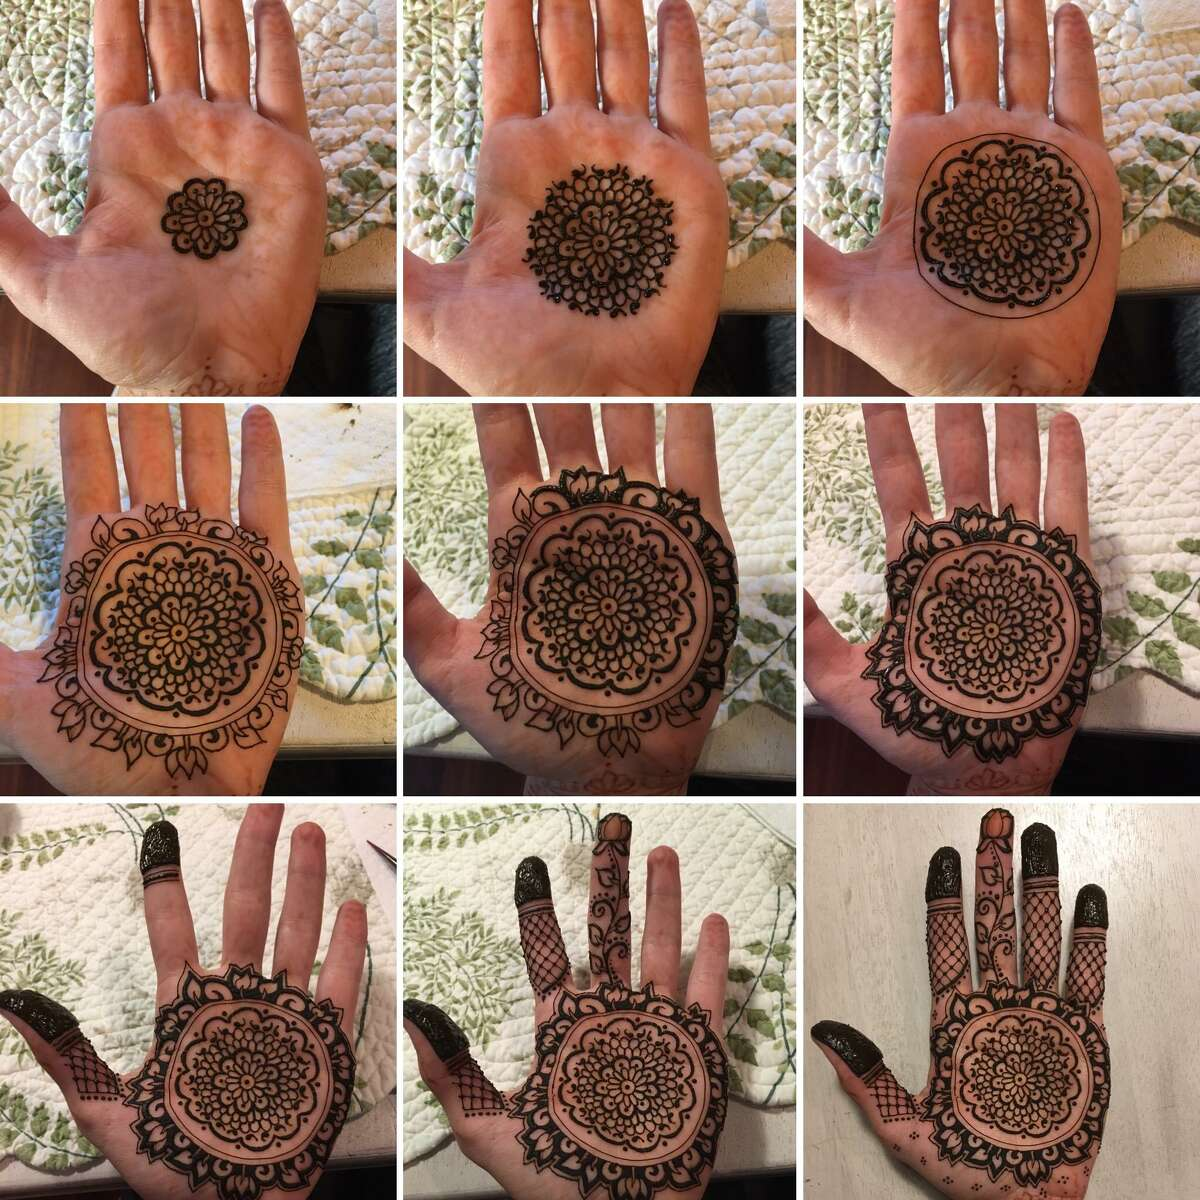 The Kent Memorial Library will present a workshop on the ancient art of henna on Saturday. Find out more.